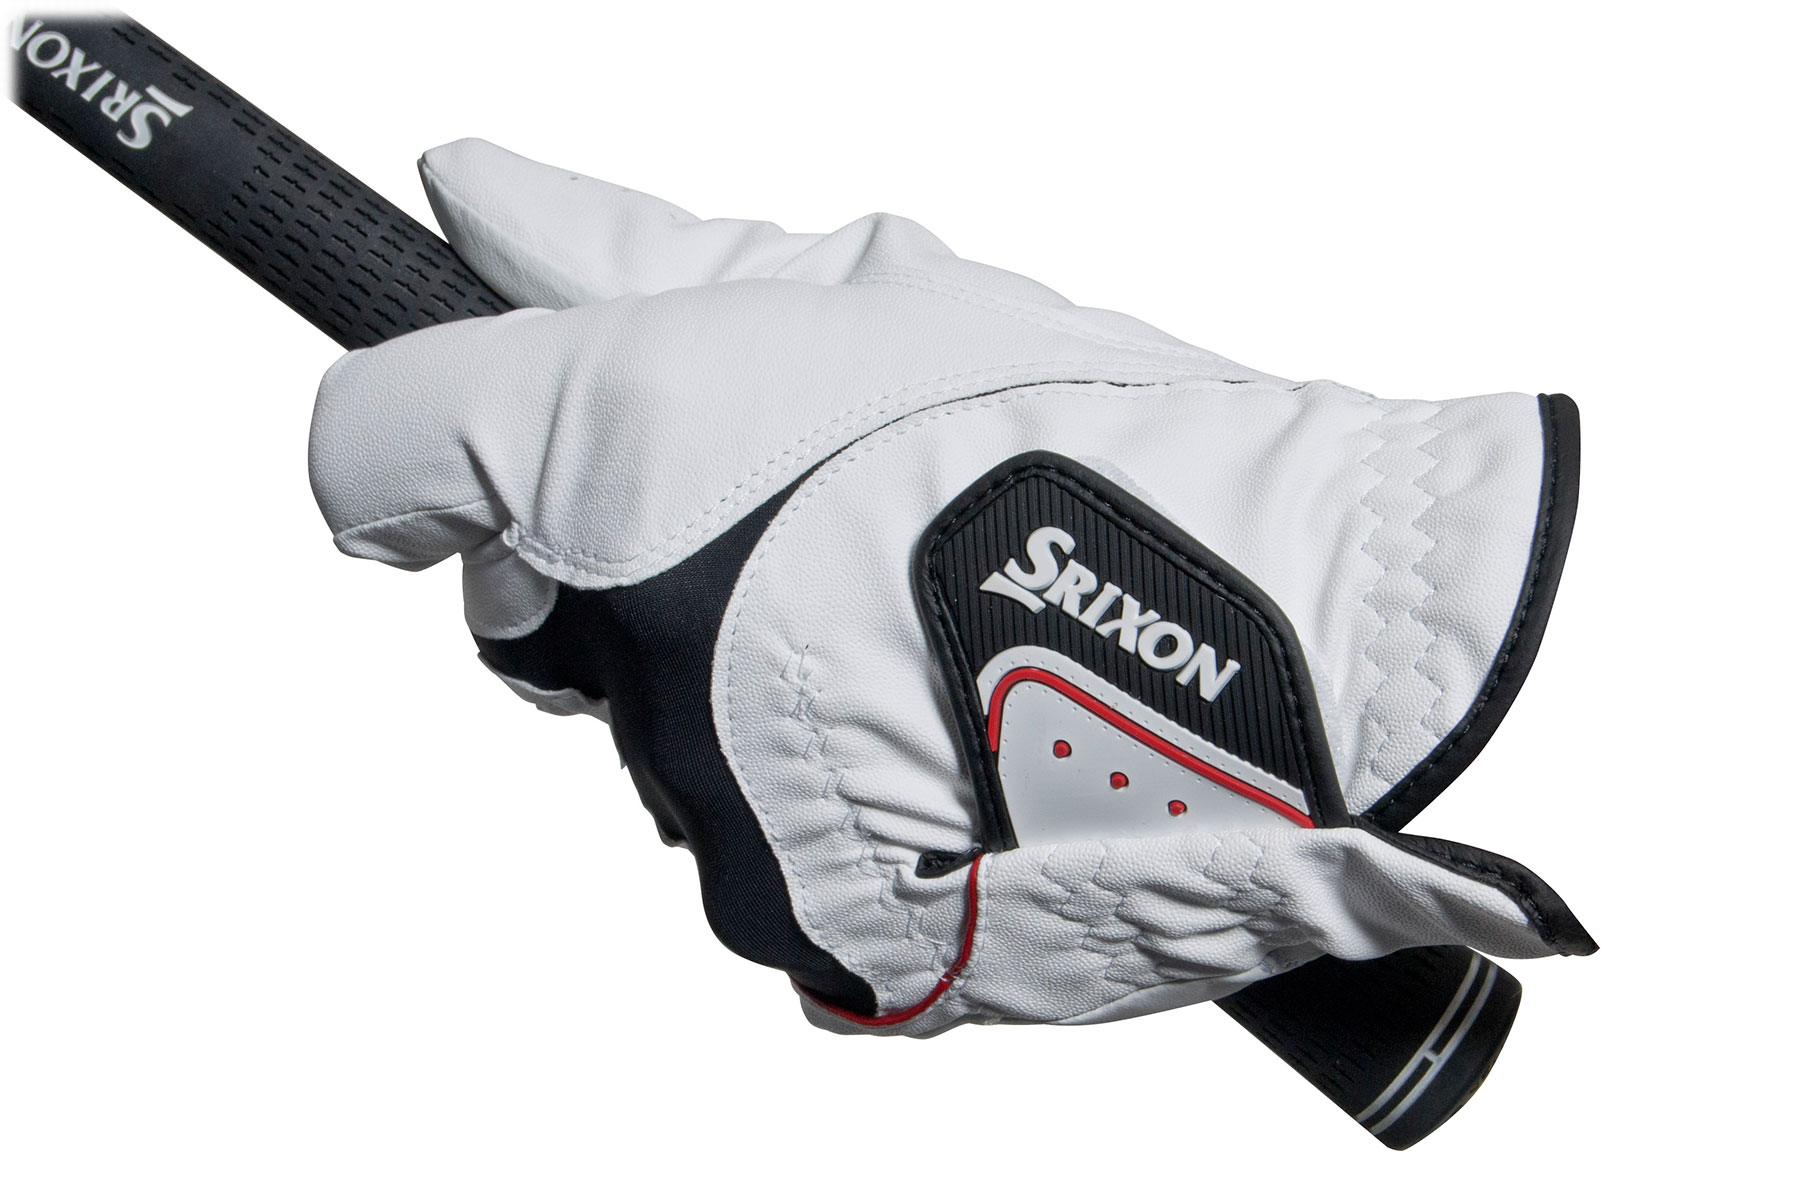 Ladies leather golf gloves uk - Srixon All Weather